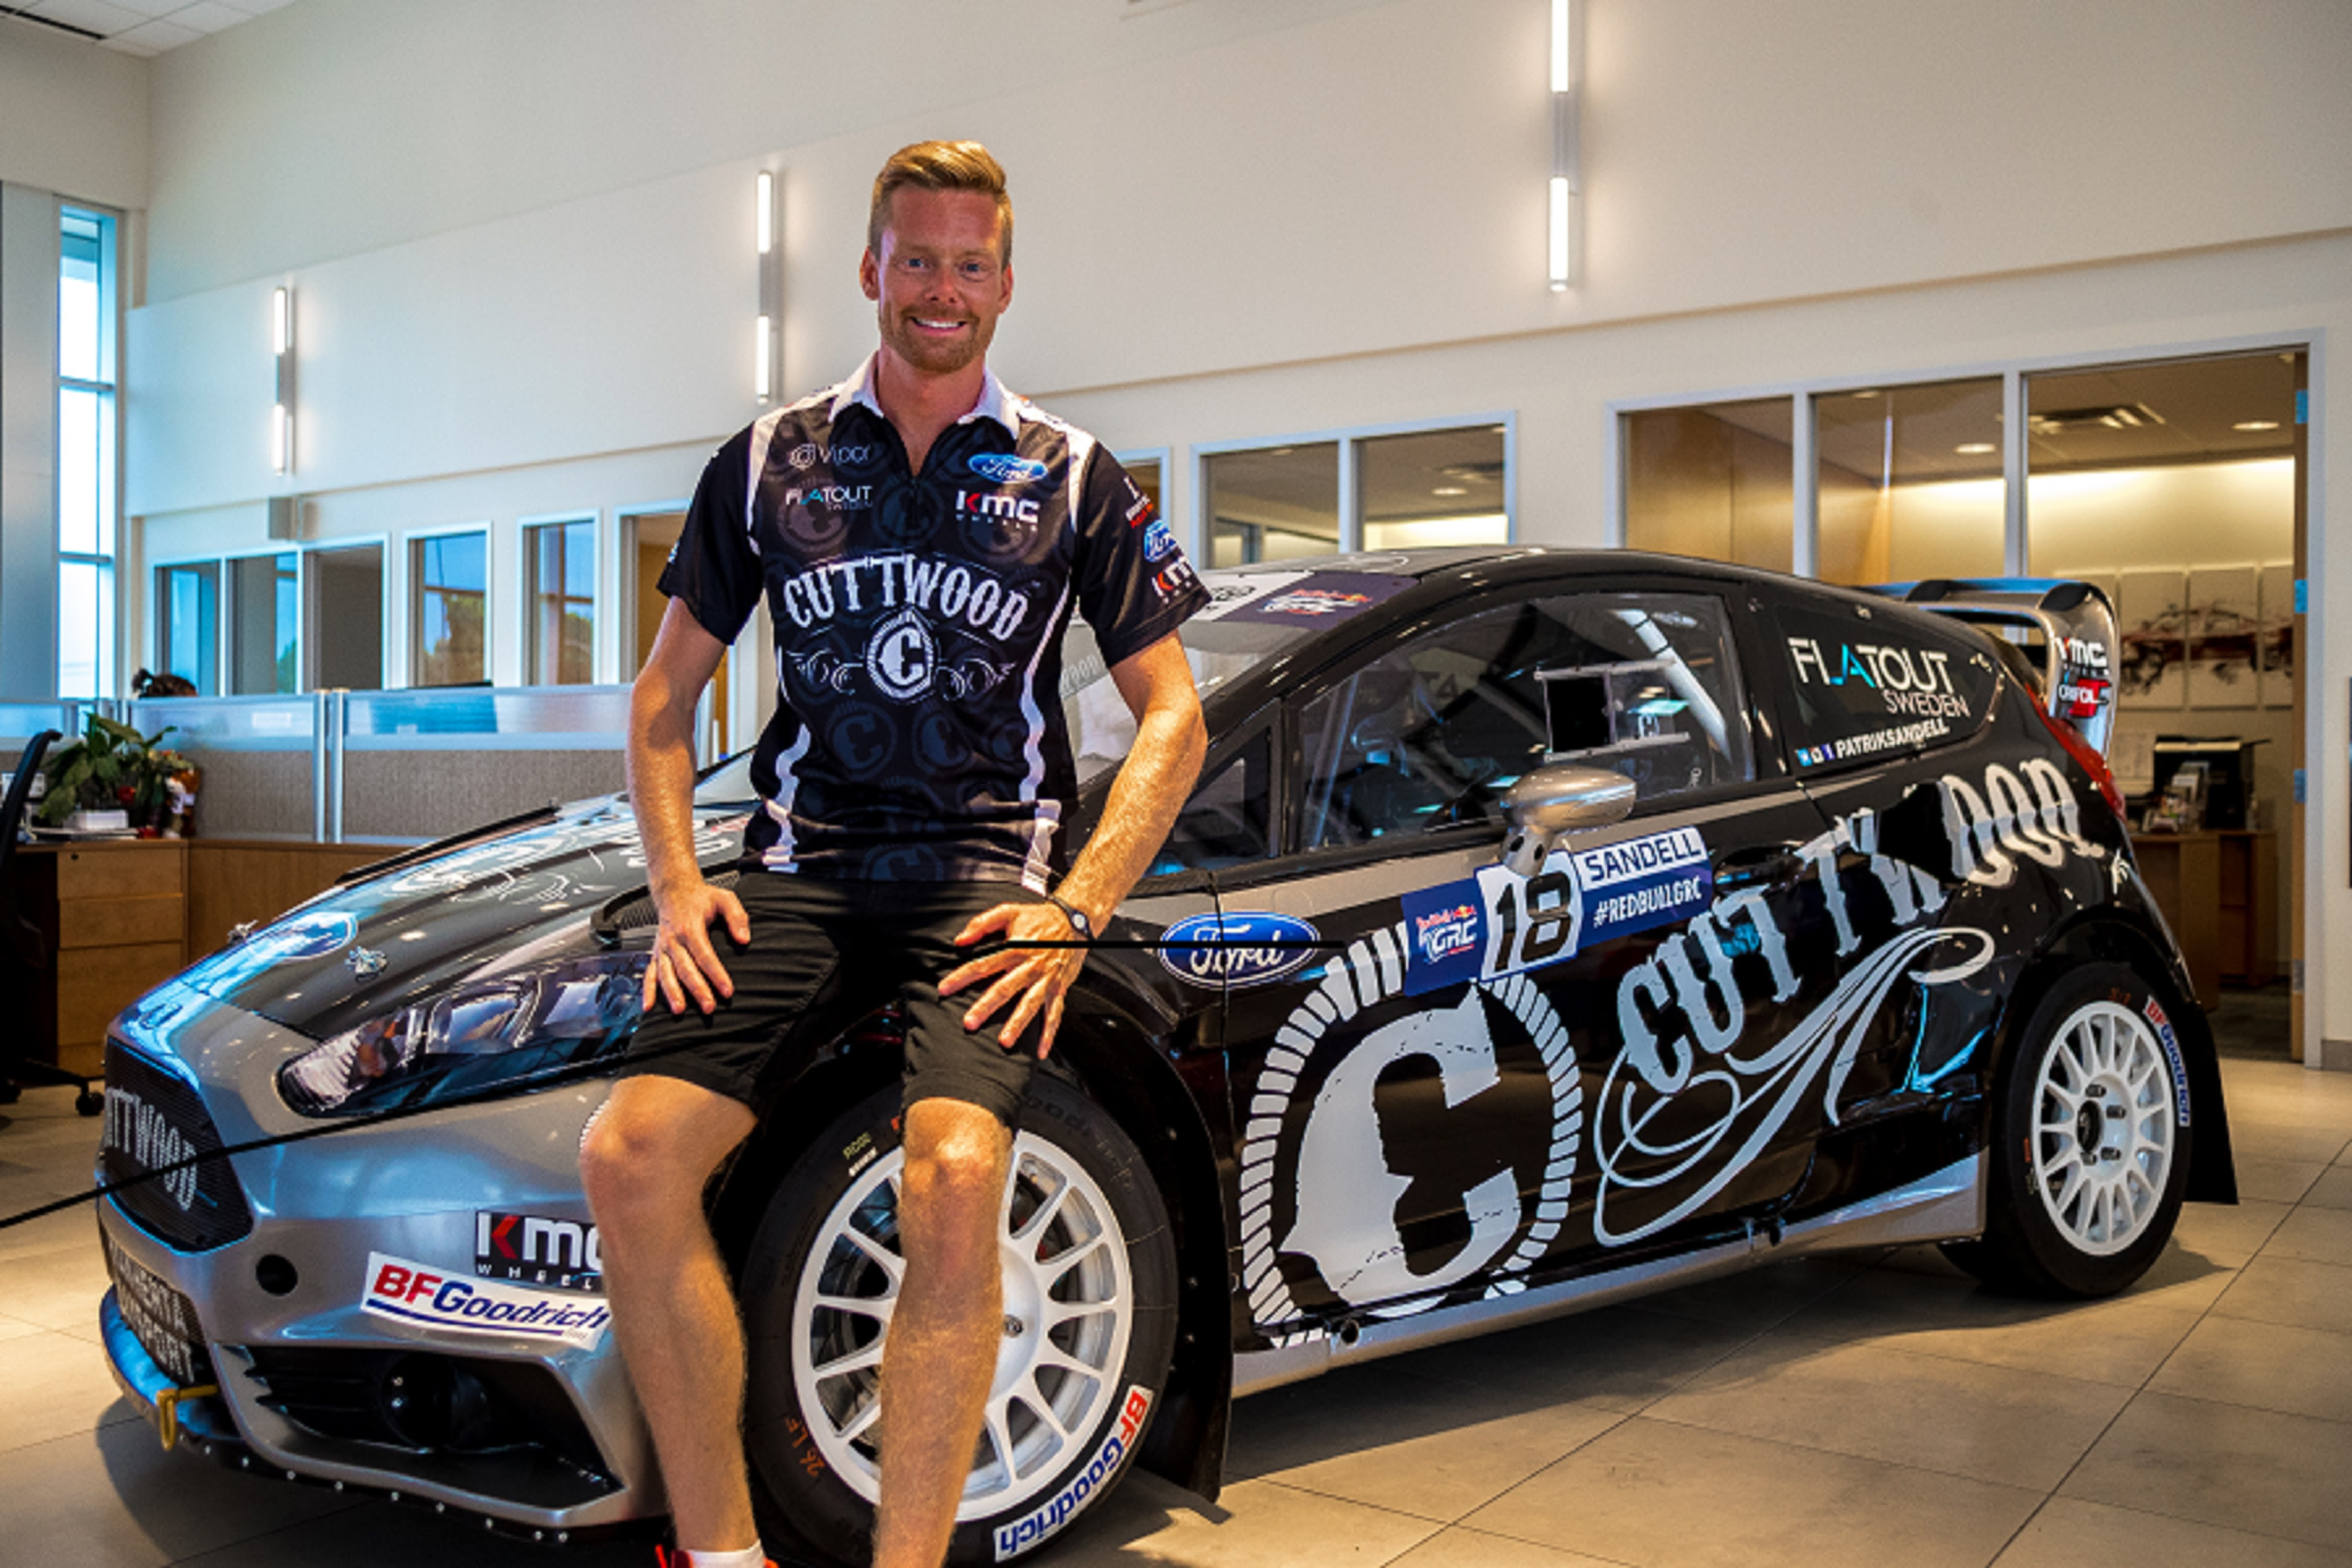 Cuttwood Becomes Primary Sponsor for the No. 18 Red Bull GRC Car / Washington DC Race Preview